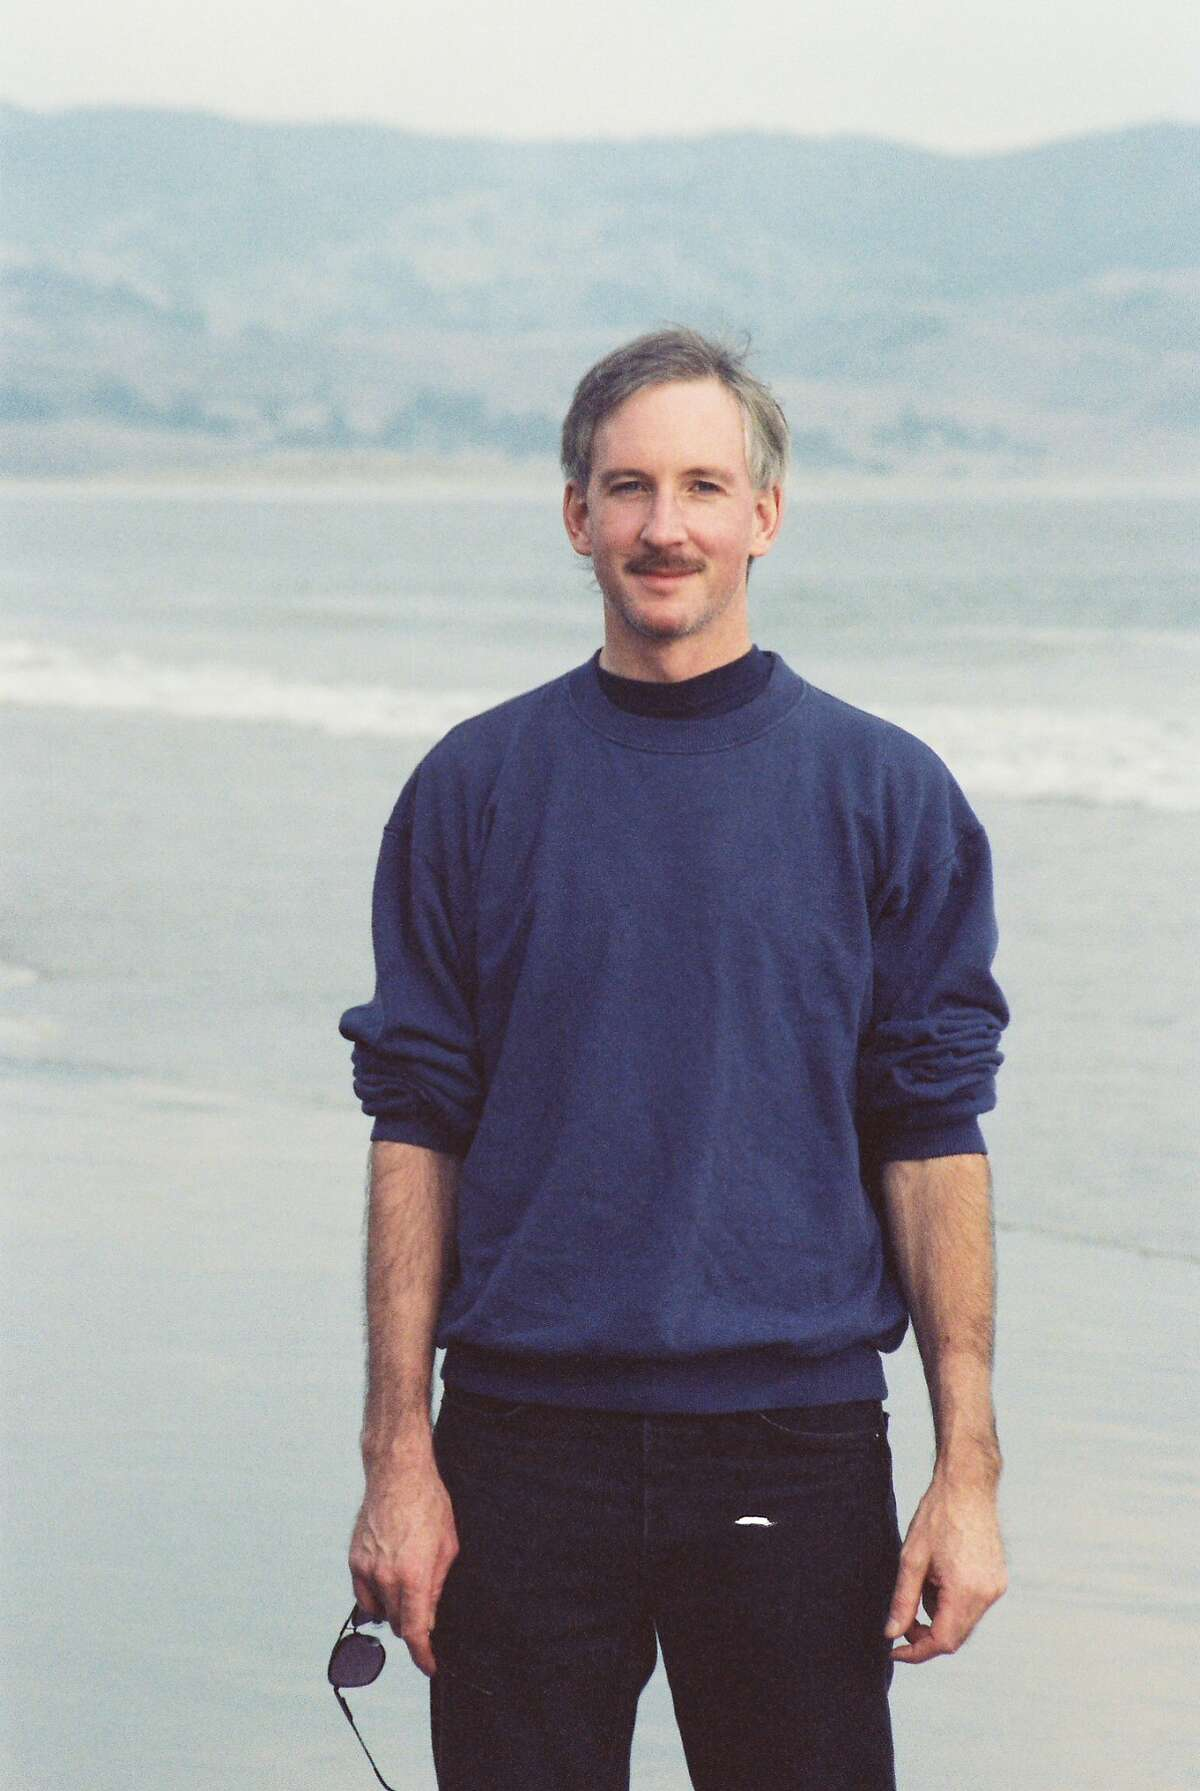 David Lull, during an outing to the beach with his sister, Summer, in 1991.